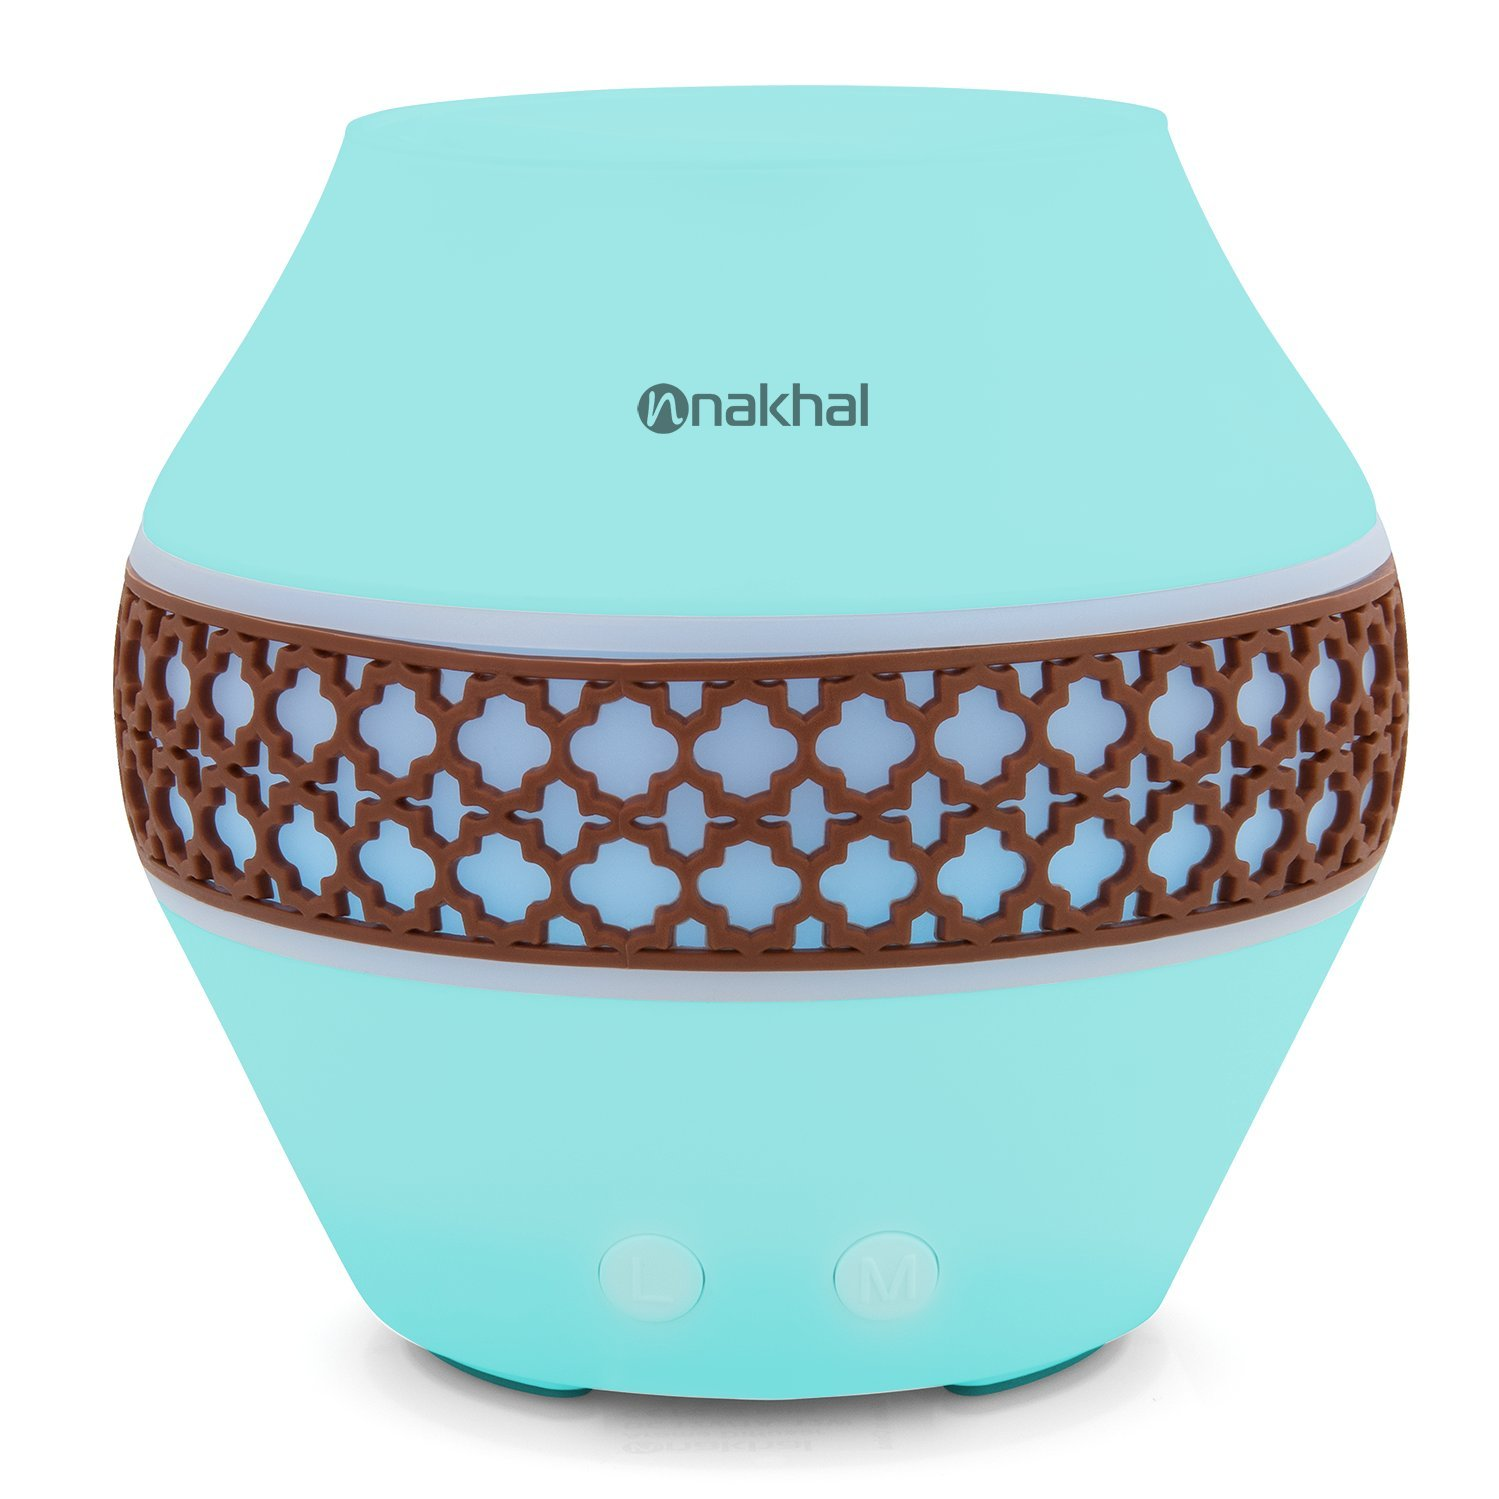 Nakhal 120 ml Aromatherapy Essential Oil Diffuser、超音波クールなミスト加湿器で7色LEDライト変更 – Classical B0714HQ77T